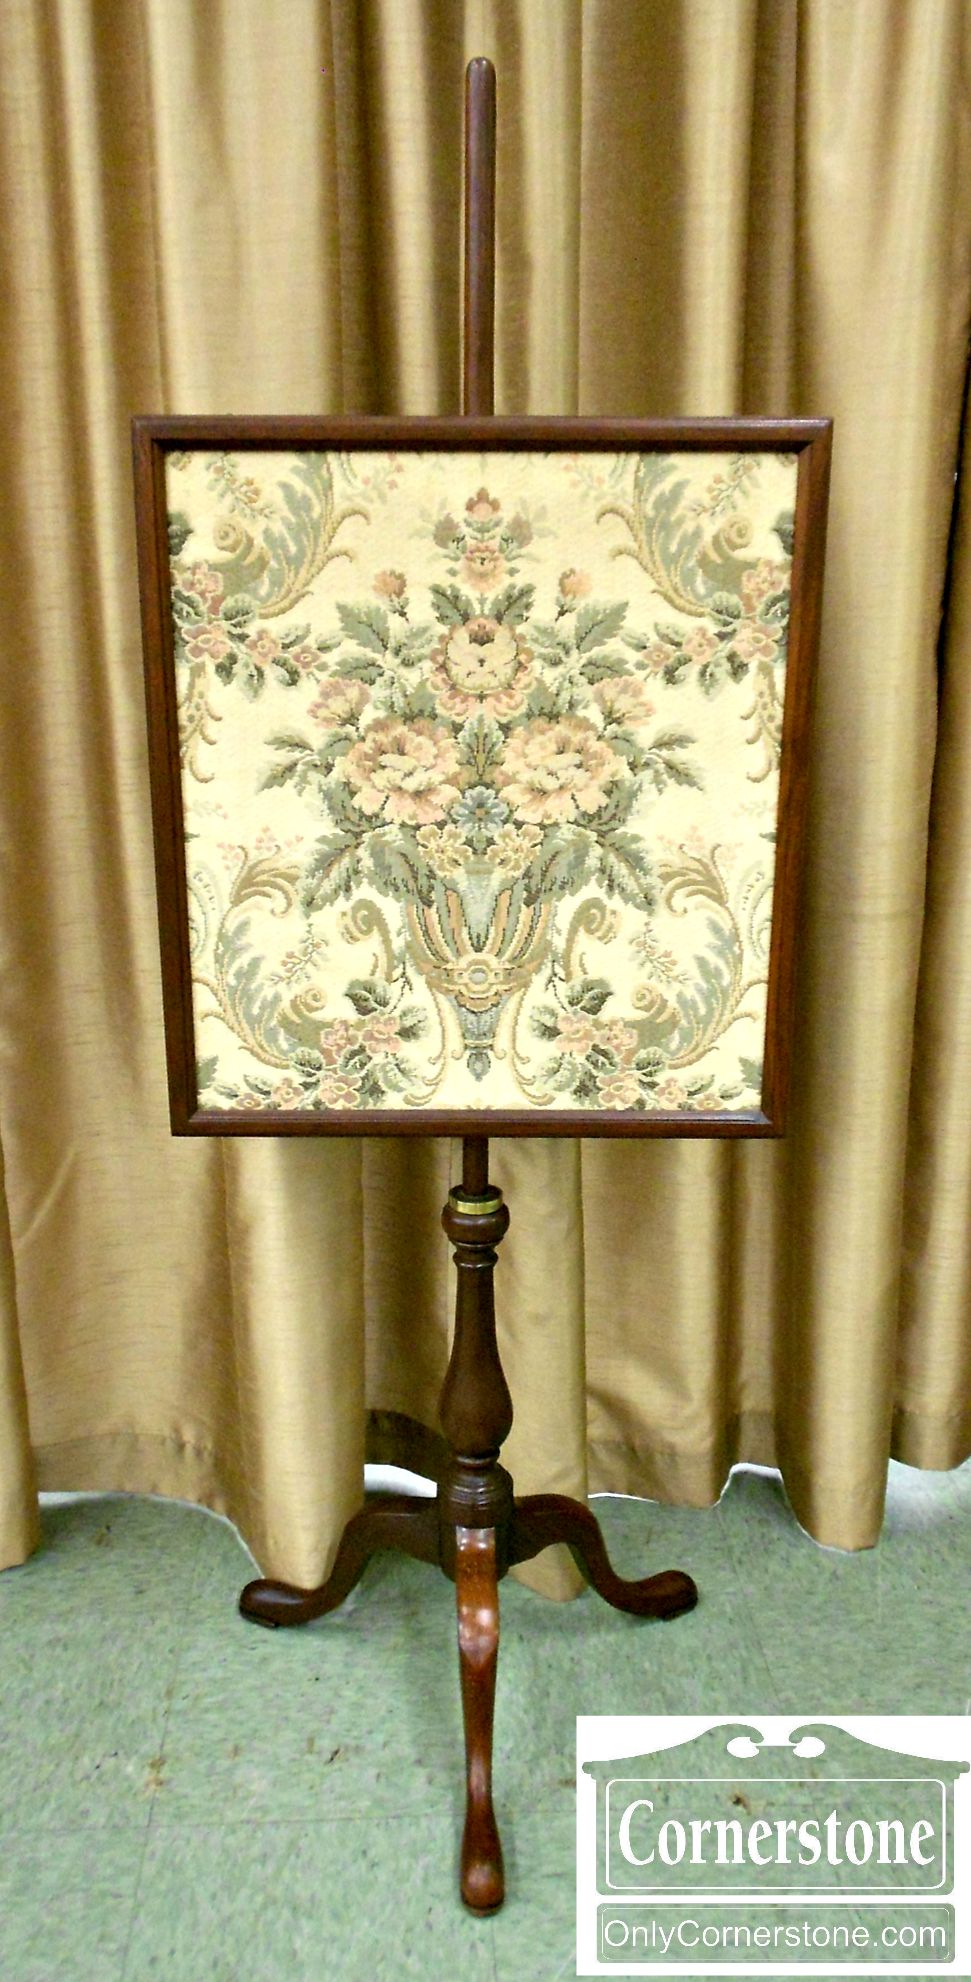 4910-14 Mahogany Queen Anne Fire Screen